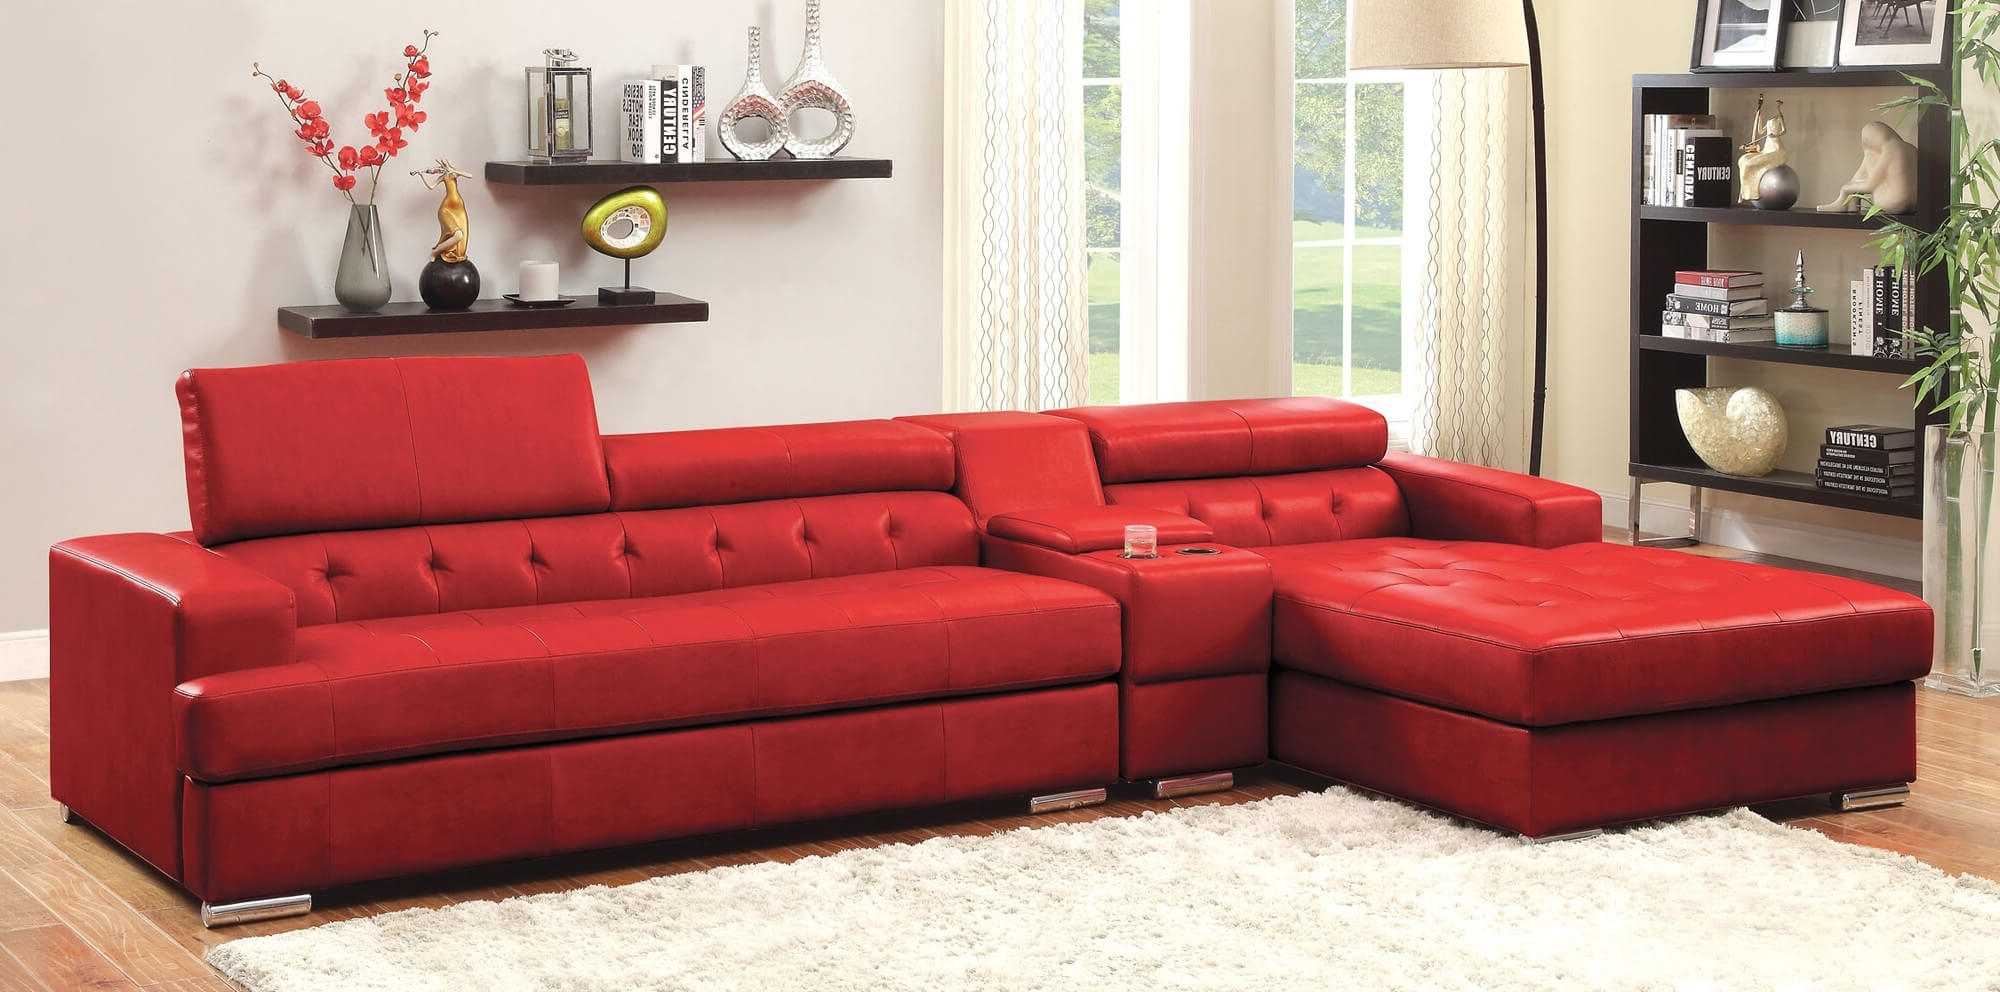 2018 Stylish Modern Red Sectional Sofas For Red Leather Sectionals With Chaise (View 1 of 15)